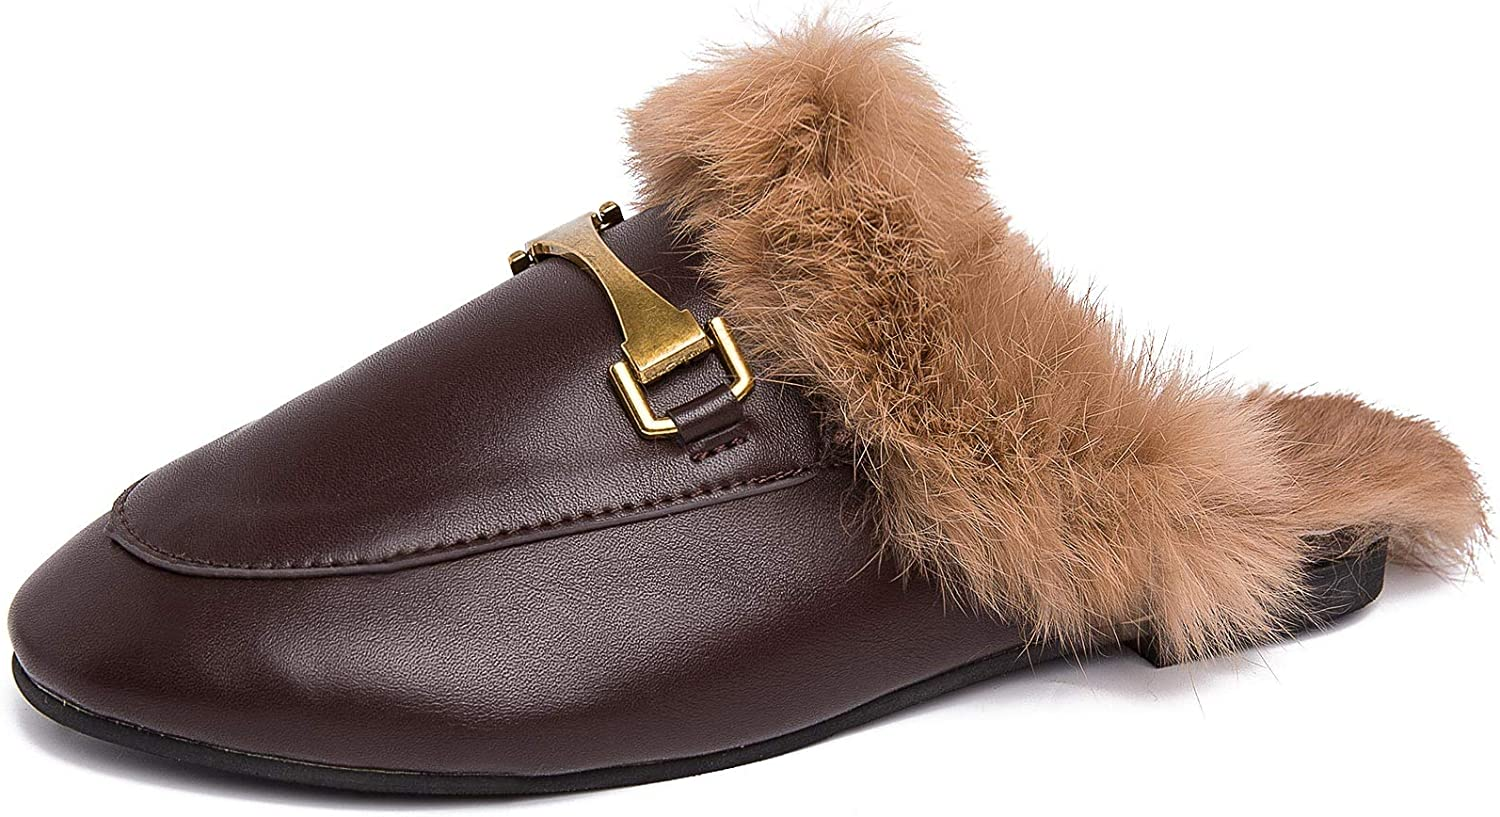 Knemksplanet Women's Mule Leather Slip On Fur Mules for Women Backless Flats Loafers Metal Decor Slippers Furry Slide Shoes